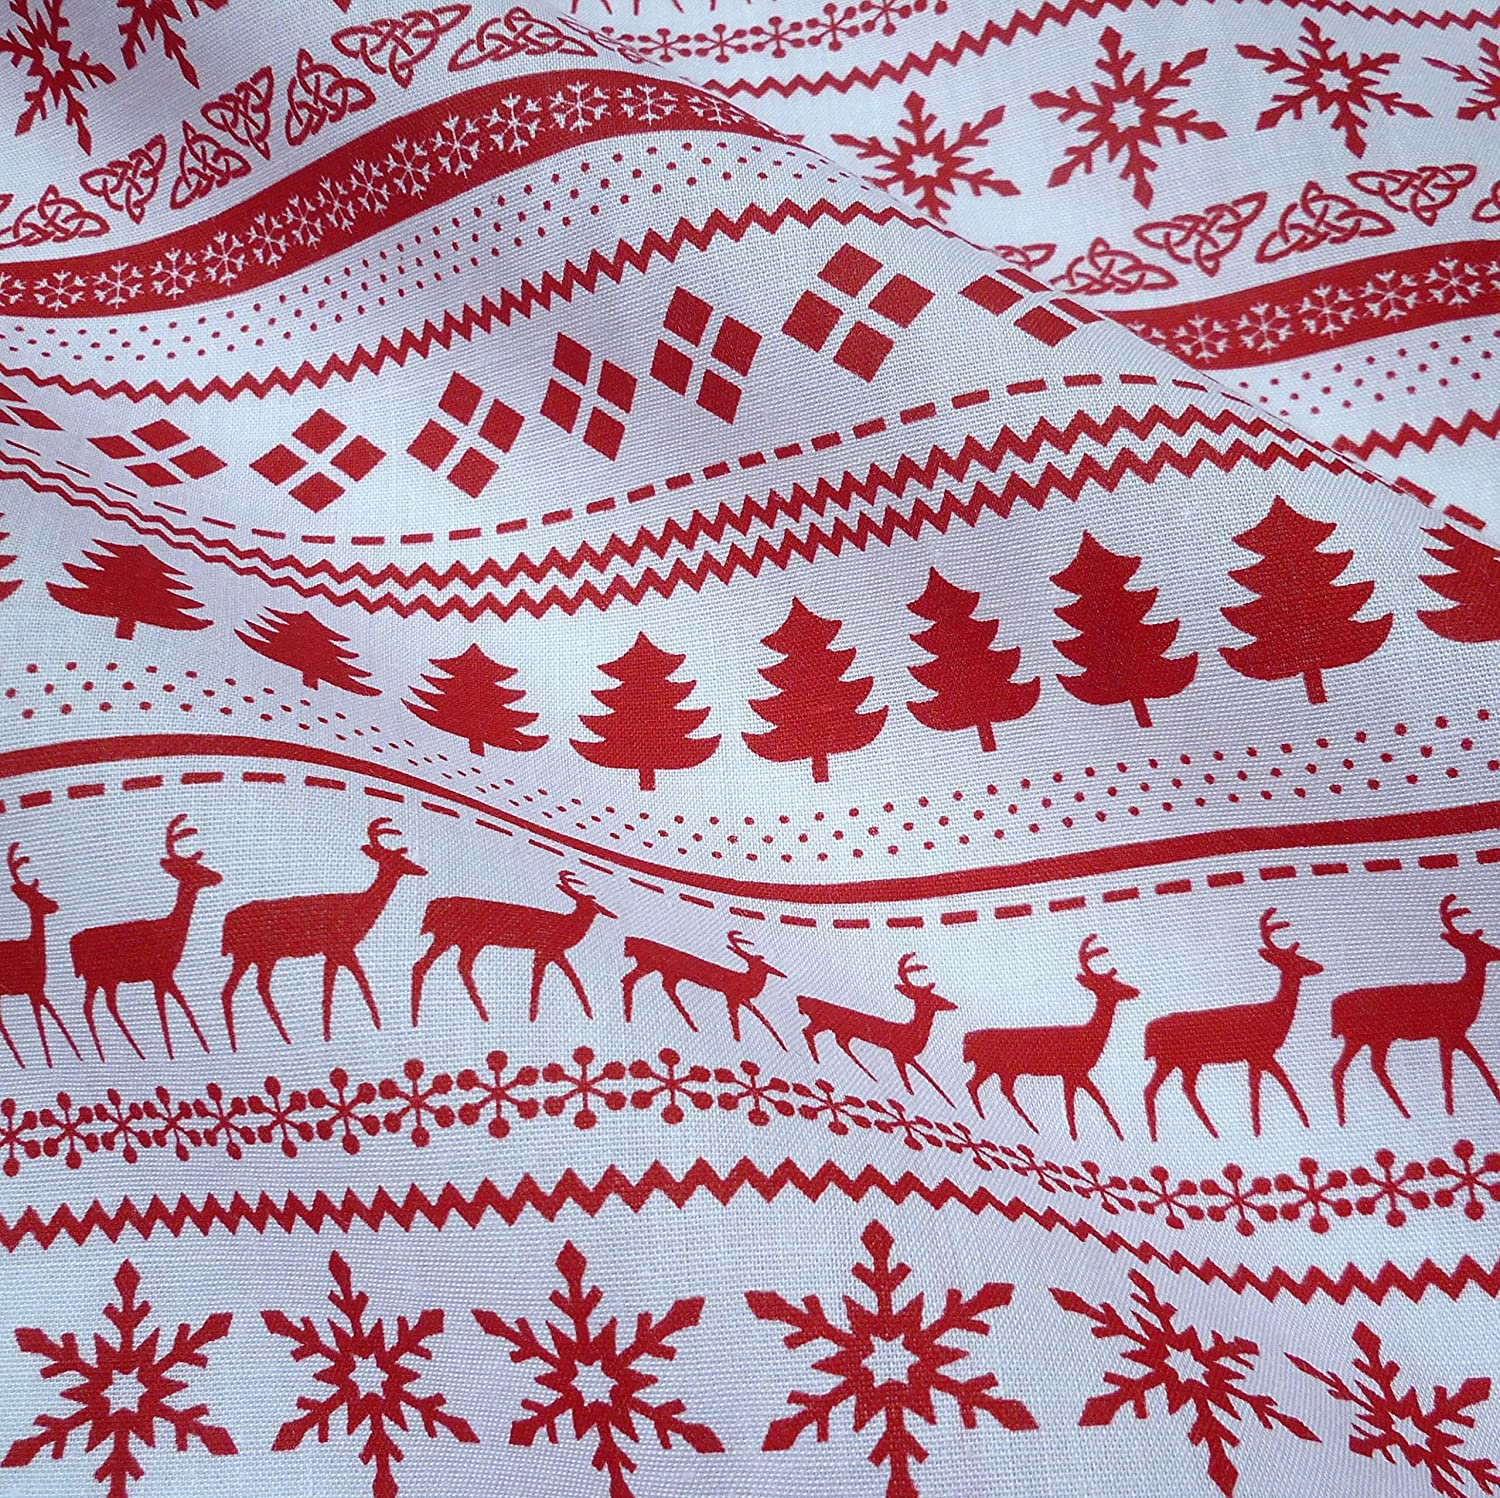 Red & White Christmas Fairisle Polycotton Fabric (Per Metre) by Nortex Mill